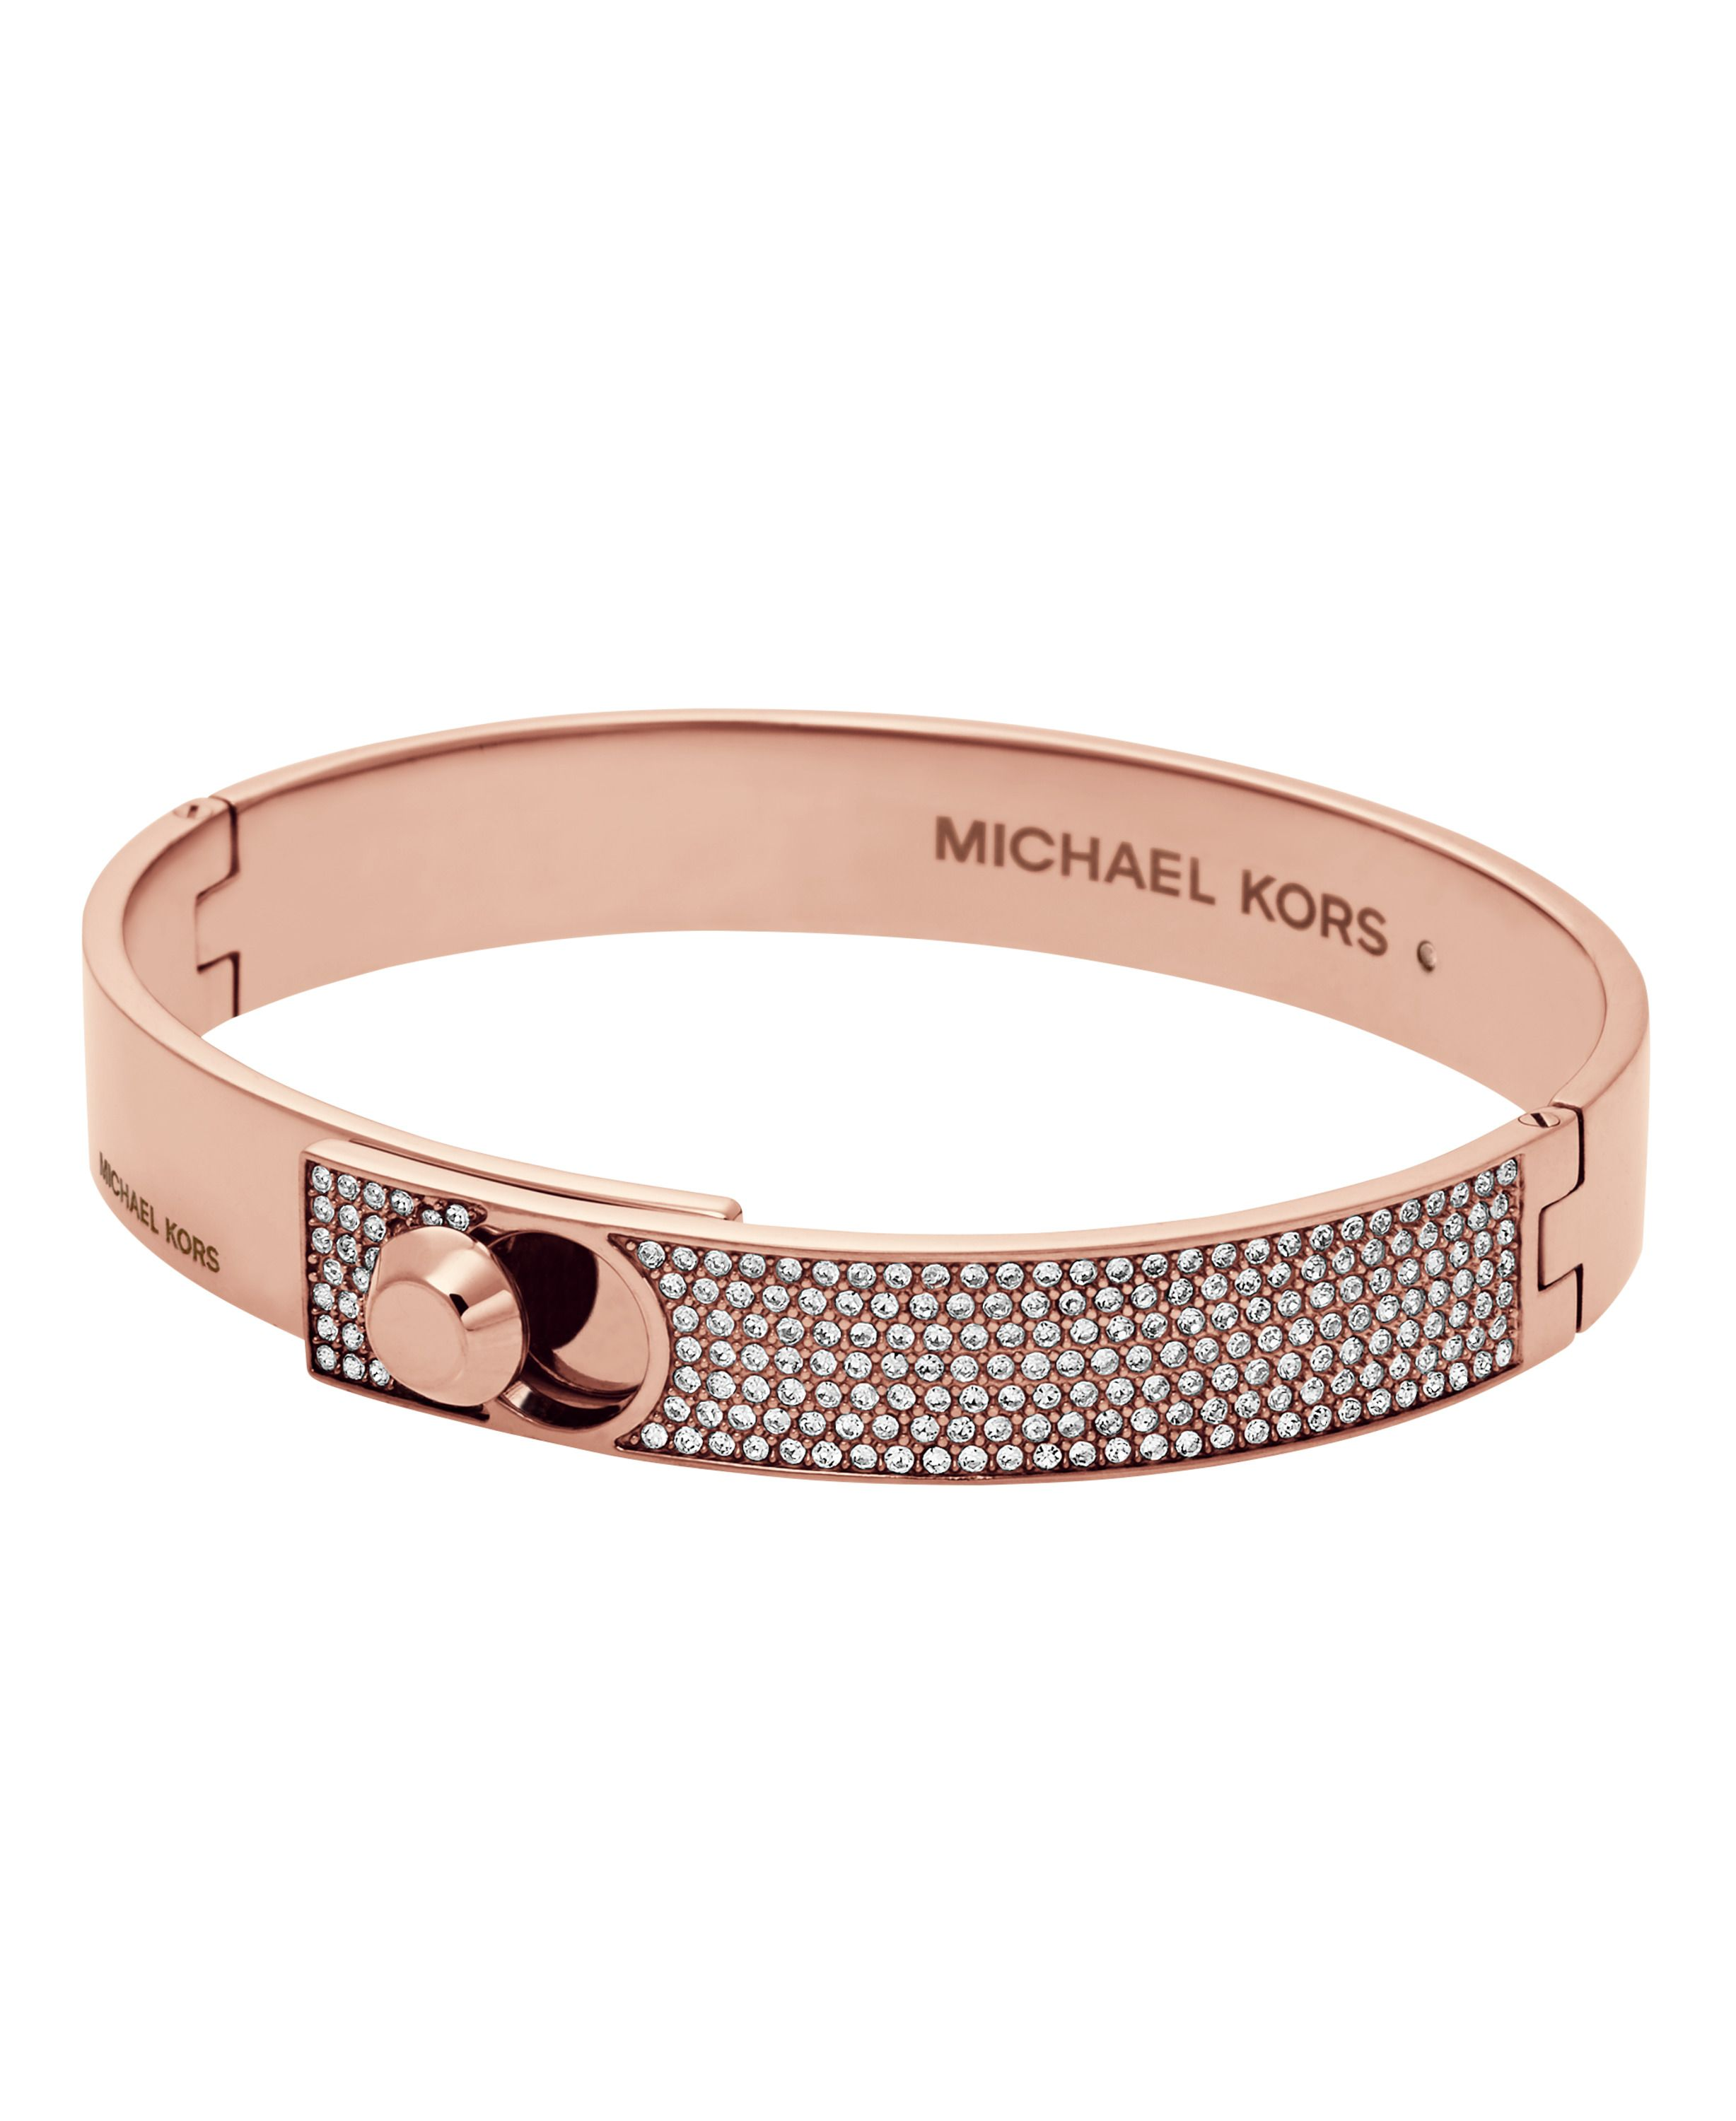 michael kors logo bracelet house of fraser. Black Bedroom Furniture Sets. Home Design Ideas